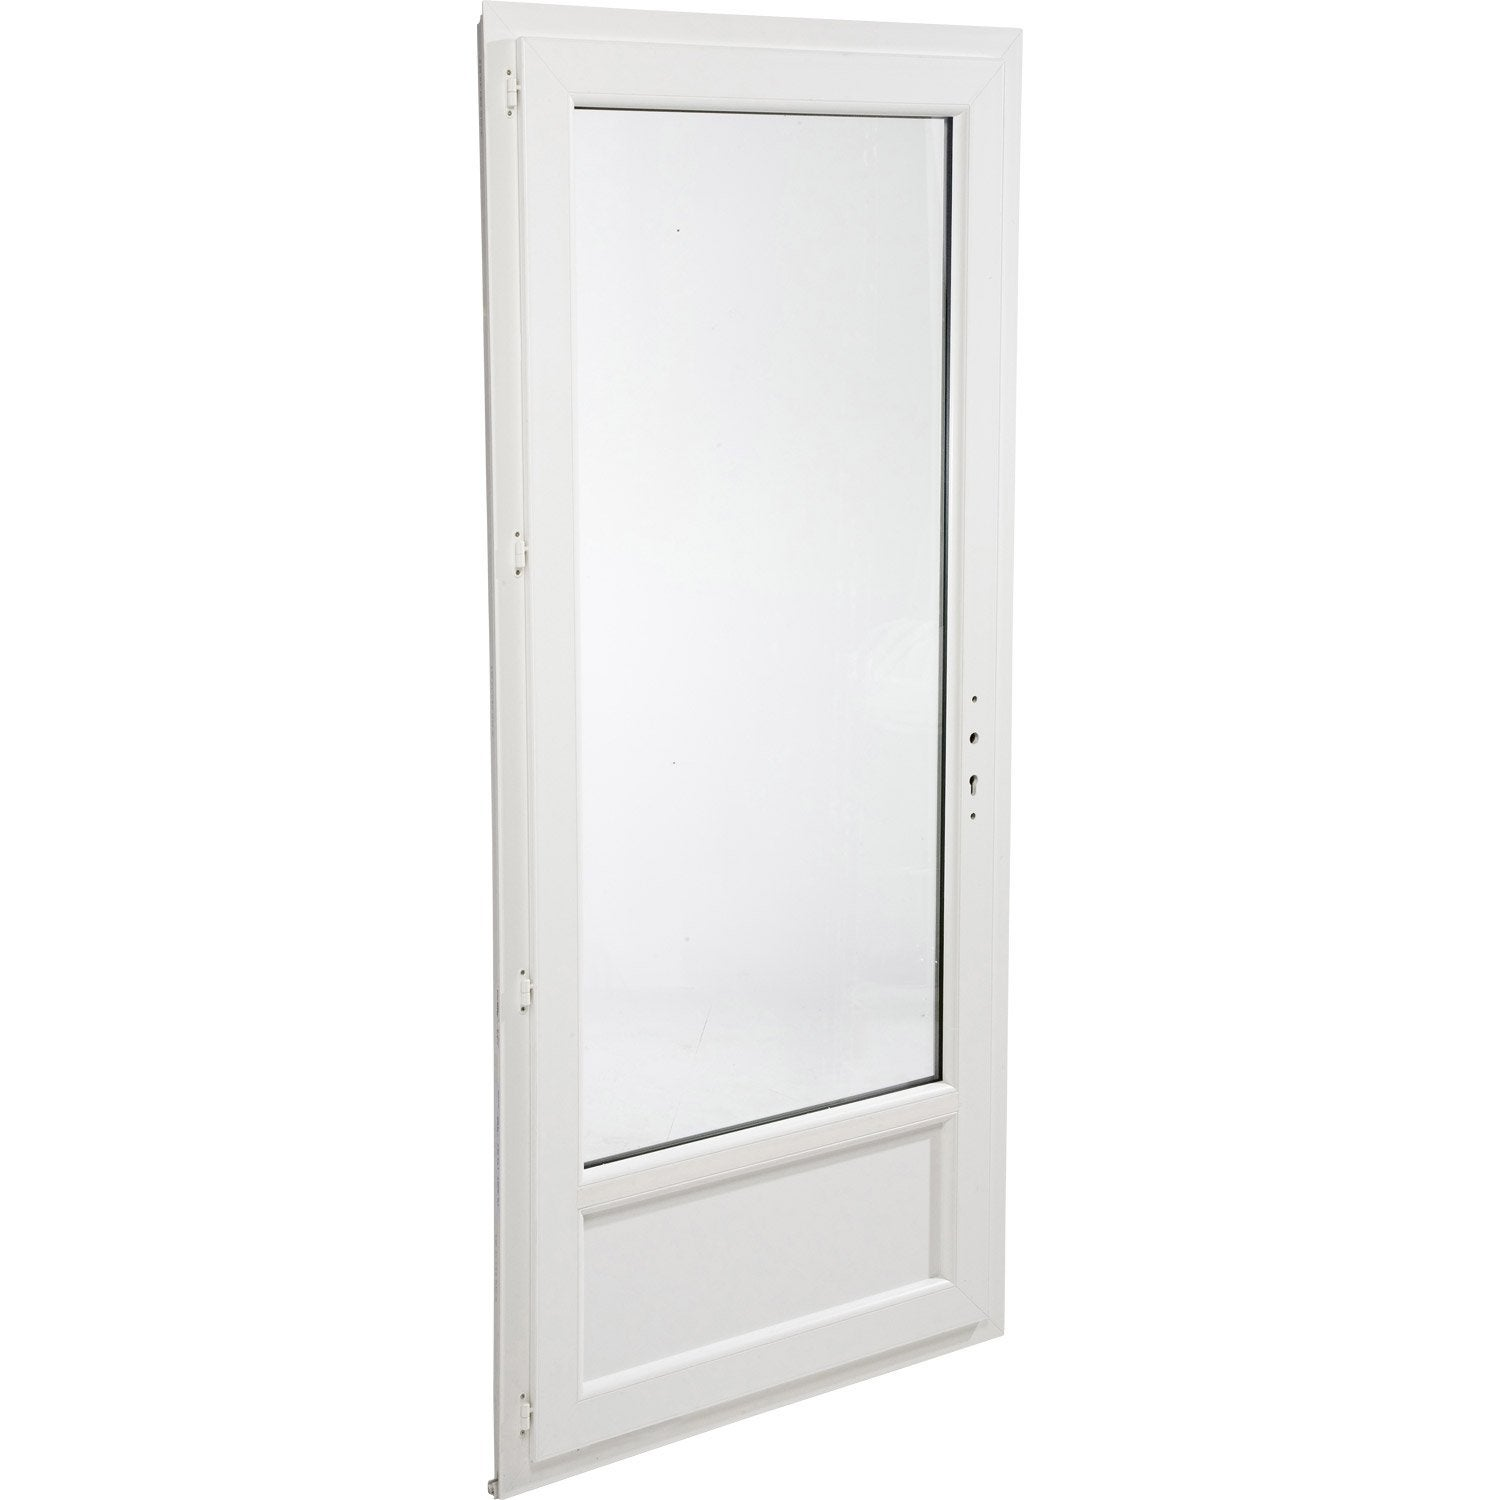 Leroy merlin fenetres pvc 28 images installation for Installer fenetre pvc